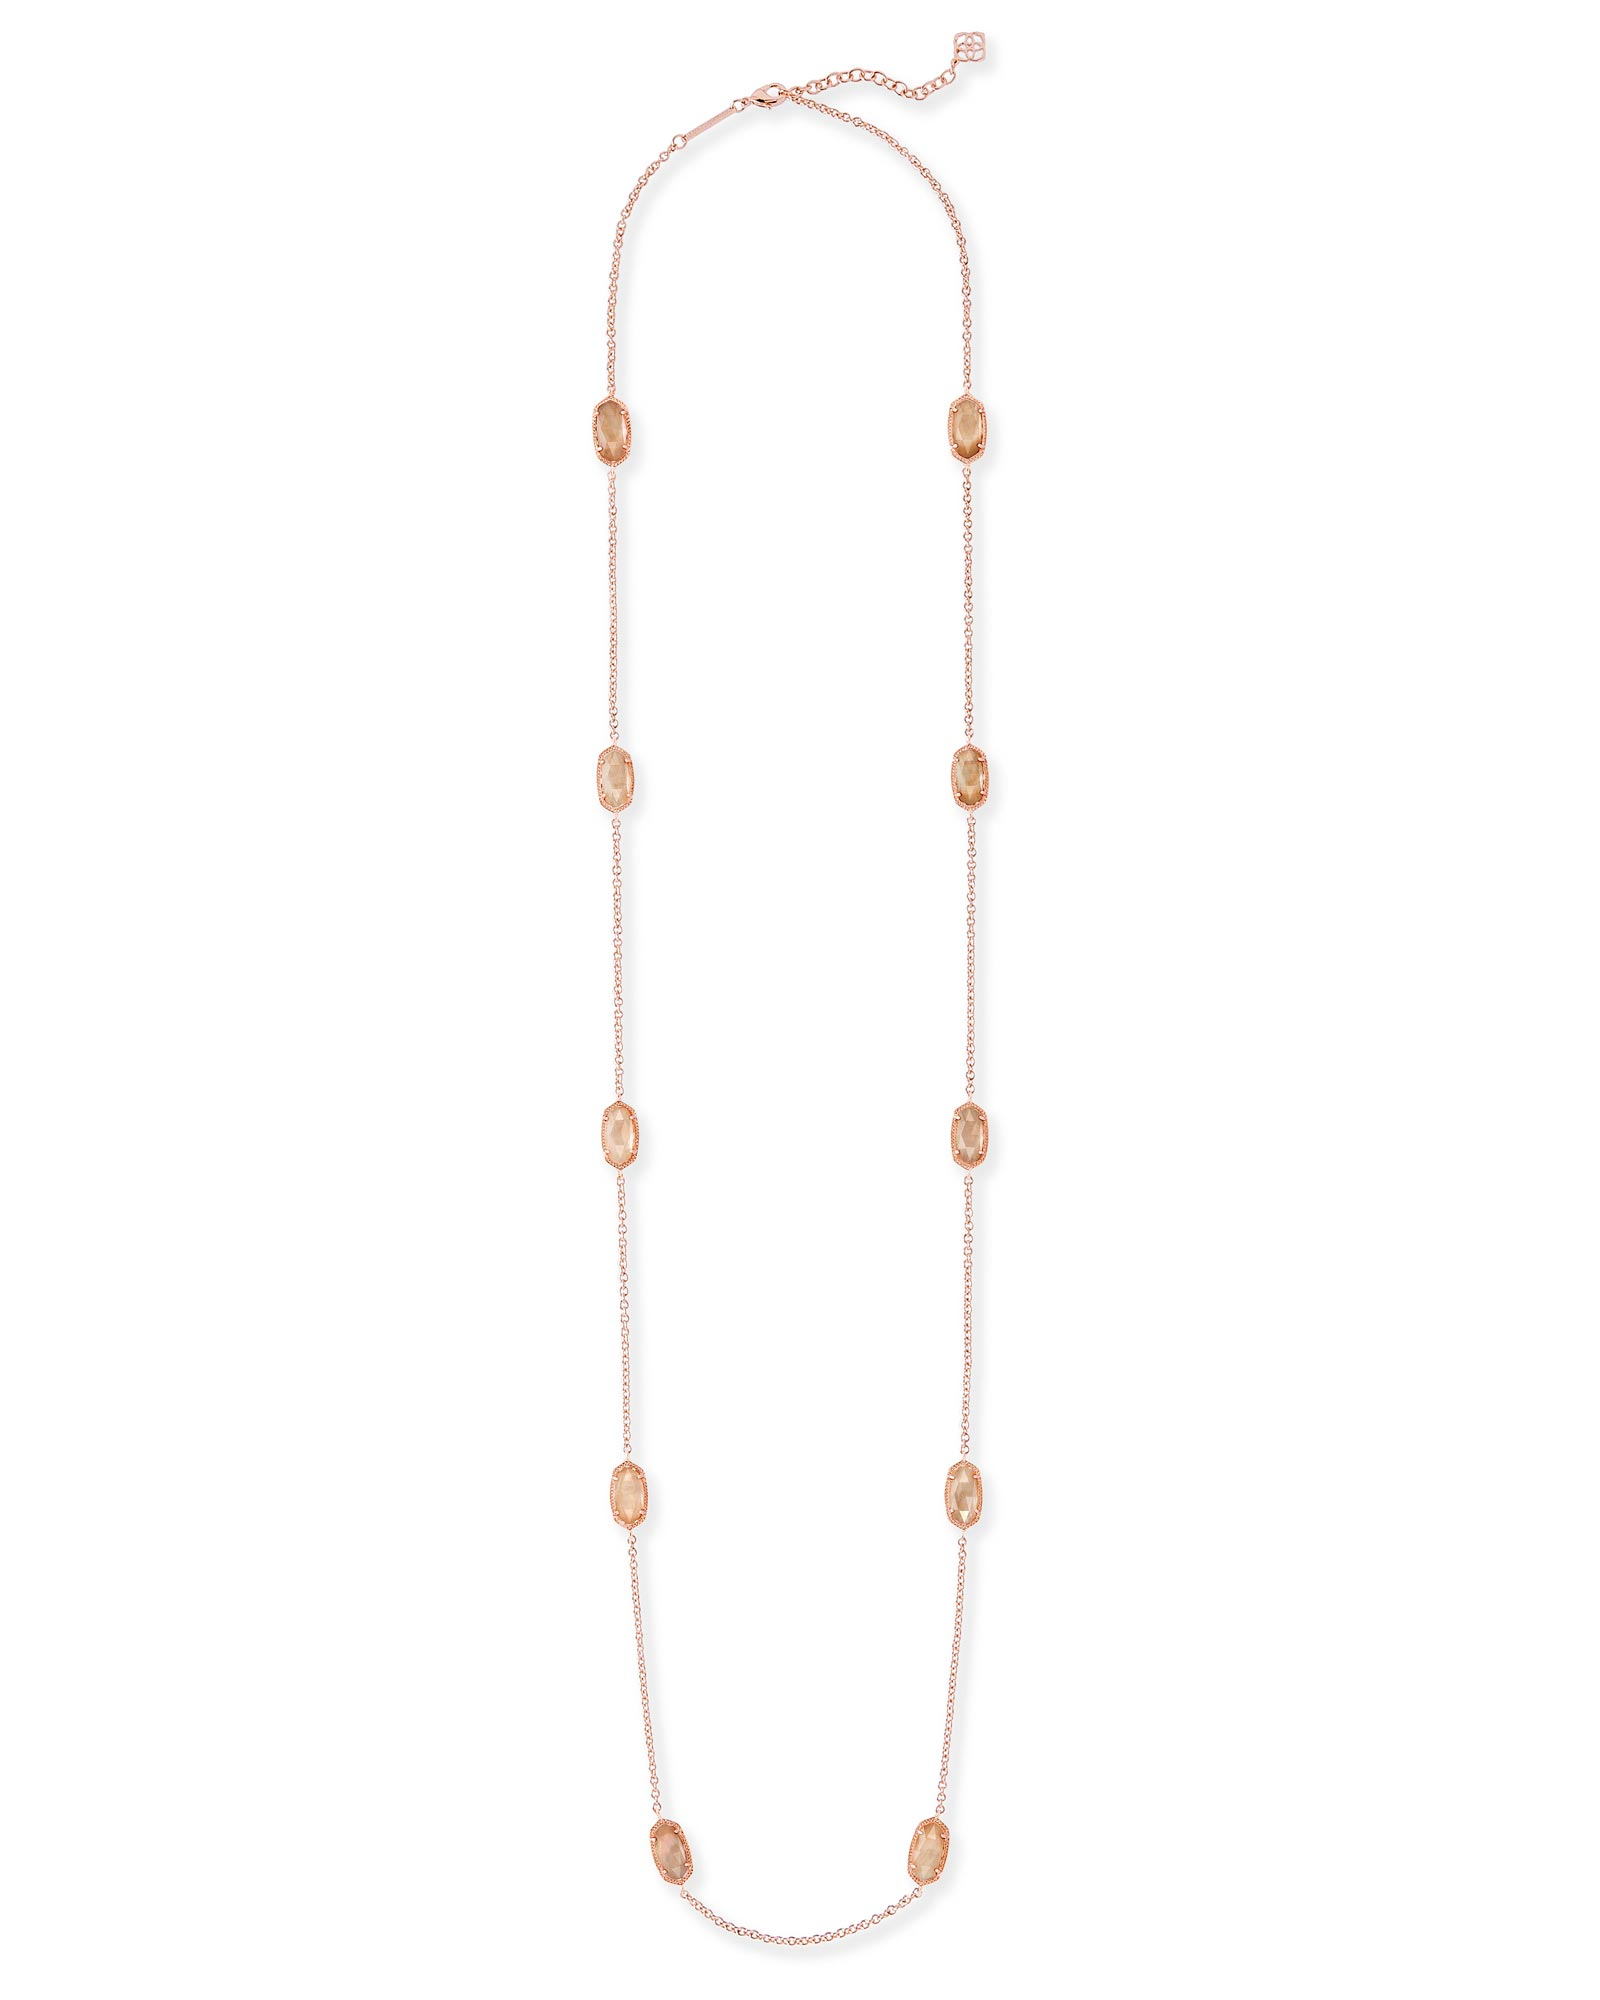 Kellie Long Necklace in Rose Gold